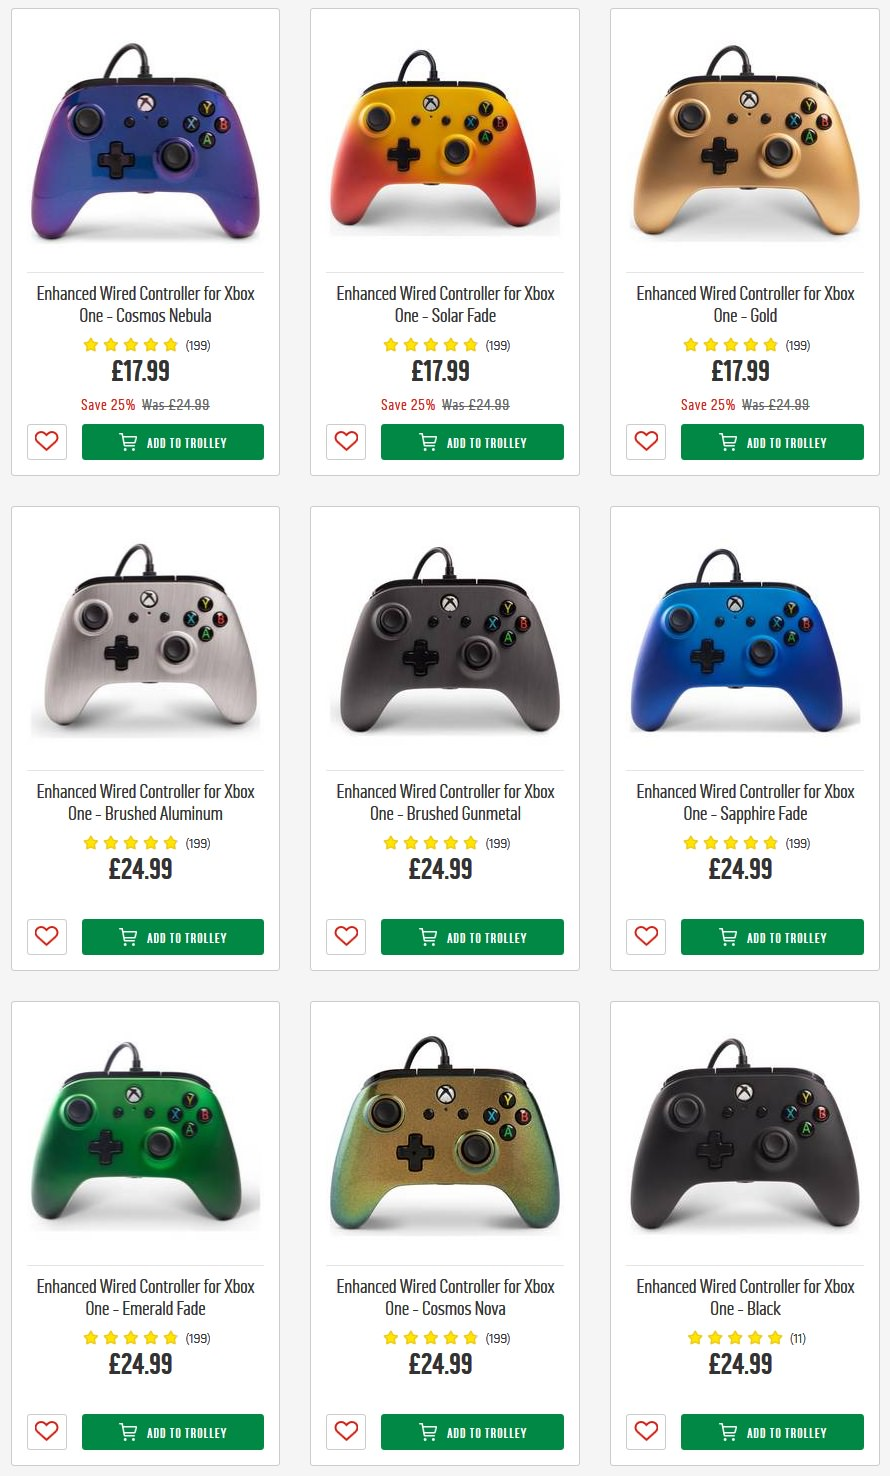 Enhanced Wired Controller for Xbox One - £17 99 - choice of colours